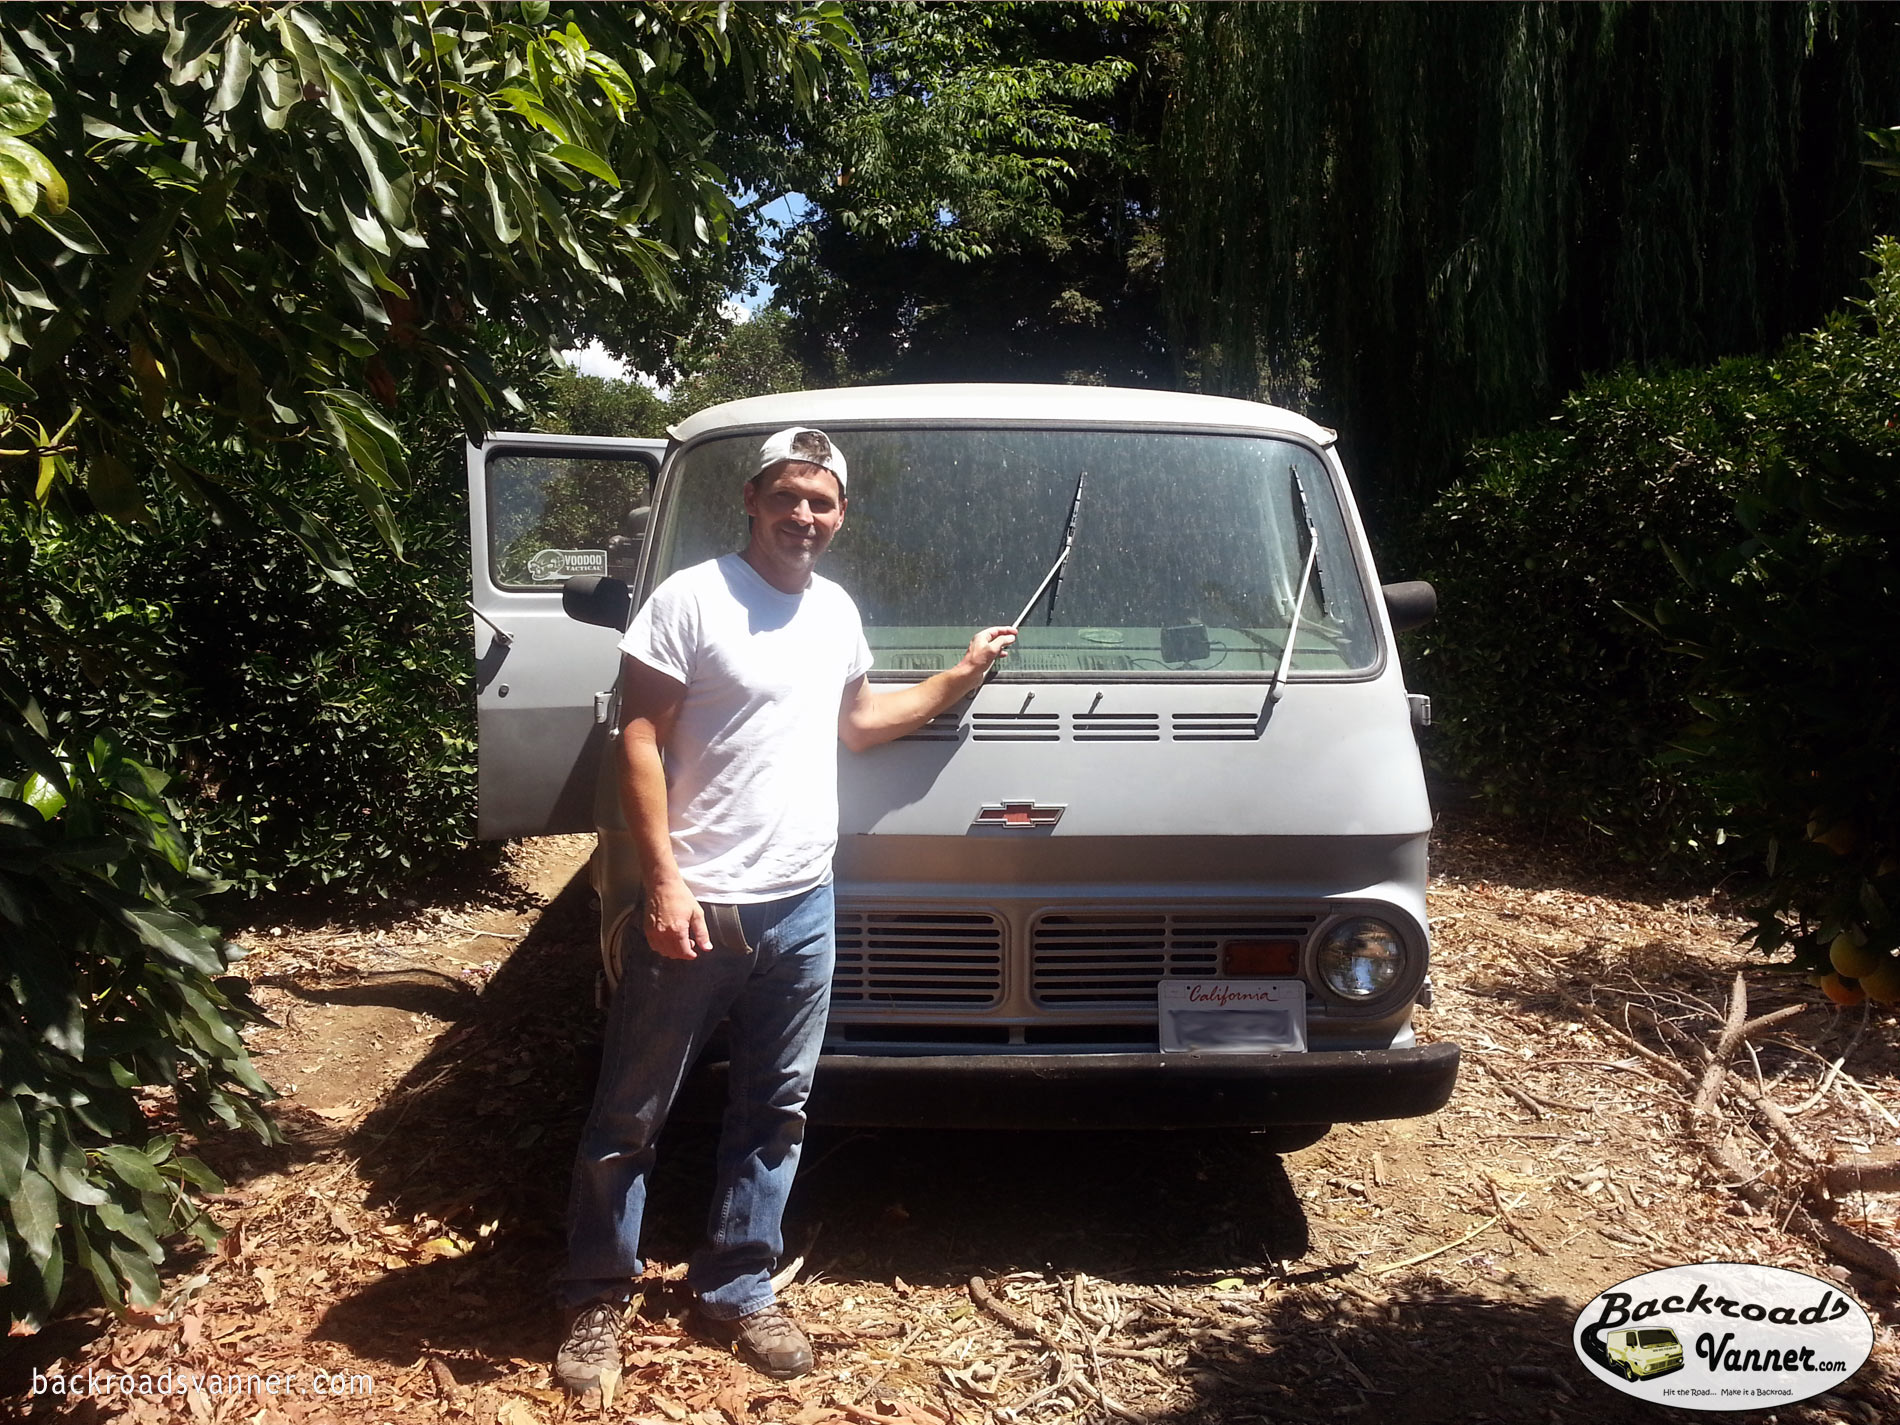 1968 Chevy Van Restoration Project | BackroadsVanner.com